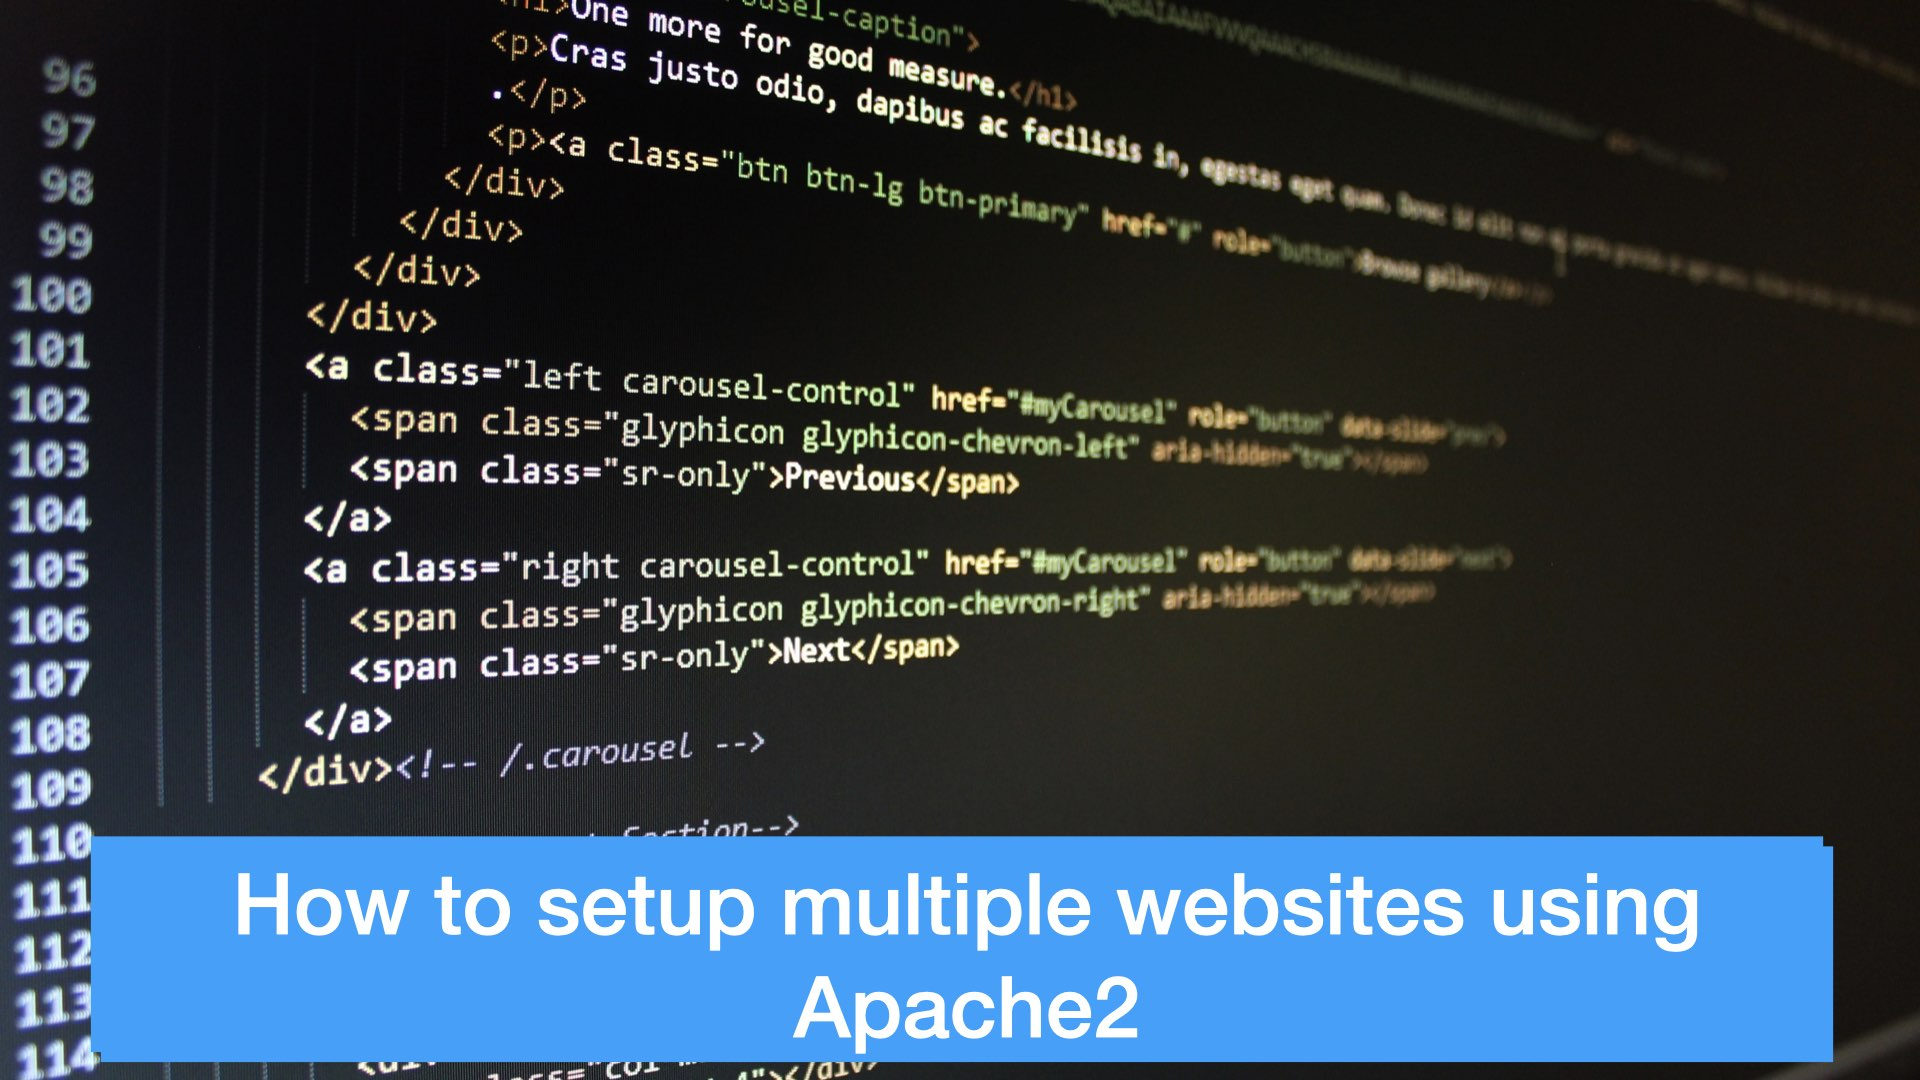 HOW TO SET UP MULTIPLE WEBSITES USING APACHE2